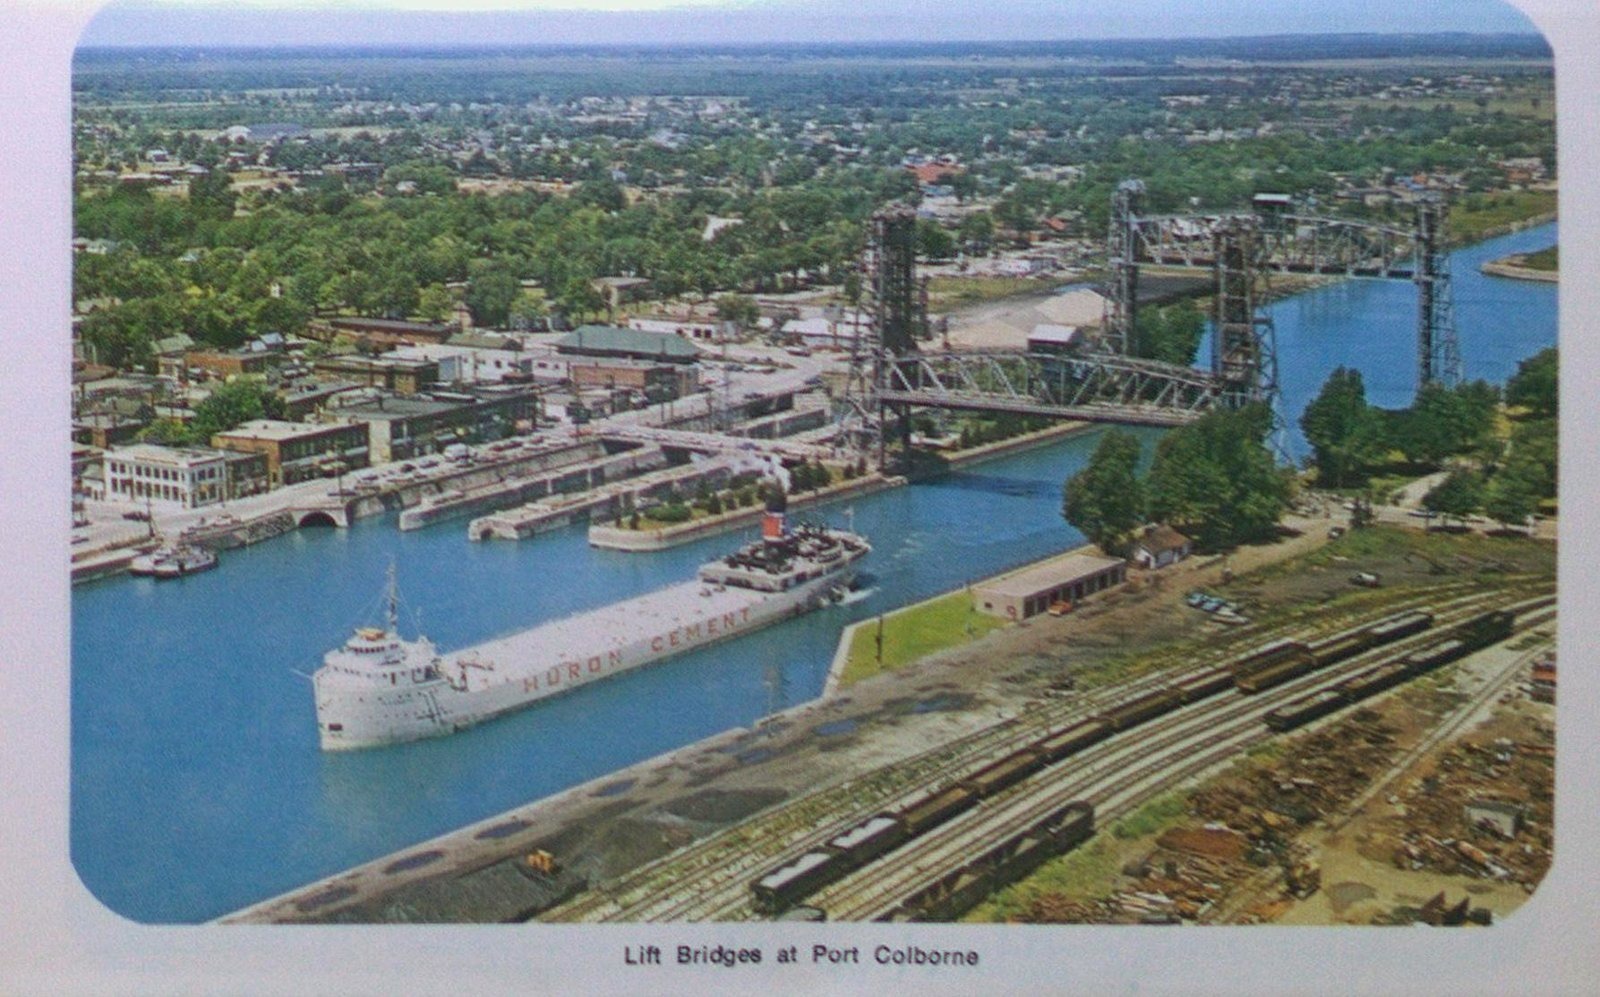 The Lift Bridges at Port Colborne on the Welland Ship Canal